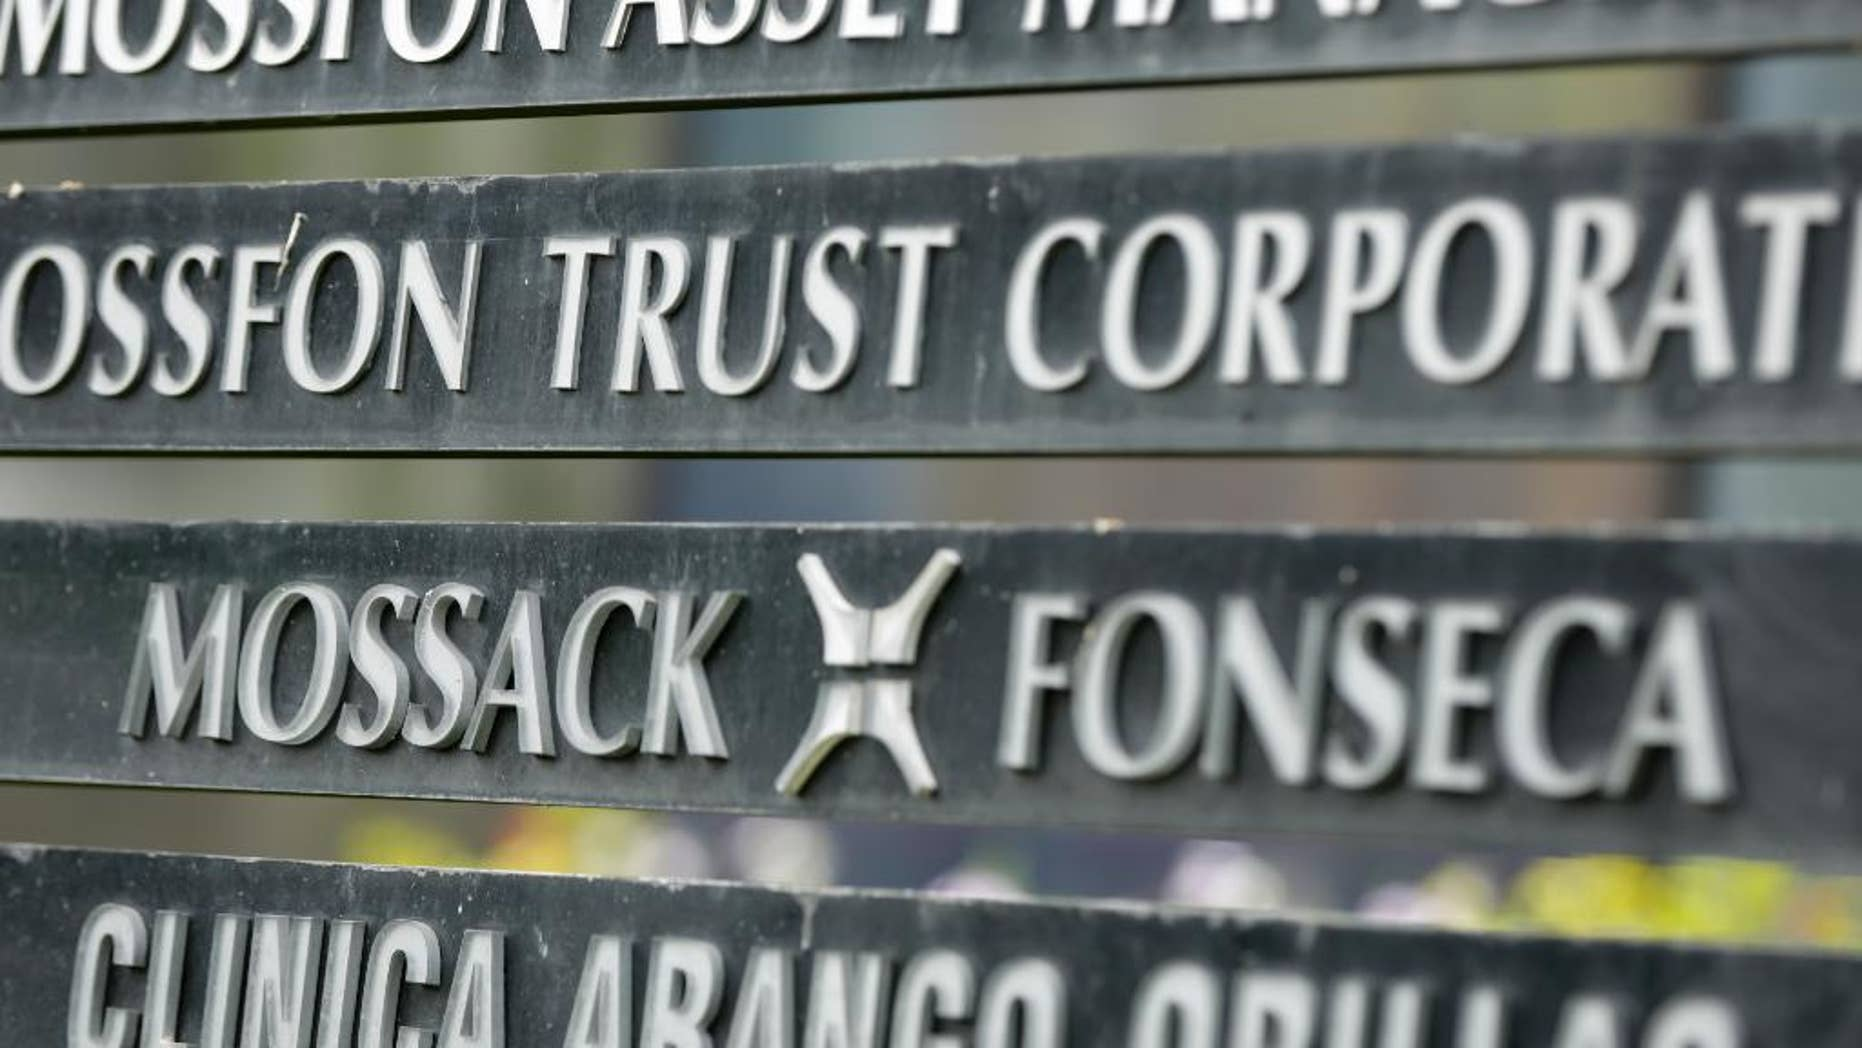 """FILE - In this April 4, 2016 file photo, a marquee of the Arango Orillac Building lists the Mossack-Fonseca law firm, in Panama City.  Prosecutors in Panama said on Saturday, Feb. 11, 2017 they've formally arrested the two partners of the Mossack-Fonseca law firm involved in last year's """"Panama Papers"""" scandal, in which thousands of pages of documents related to offshore accounts were leaked. The arrests are for money laundering related to another scandal involving bribes paid by the Brazilian company Odebrecht. (AP Photo/Arnulfo Franco, File)"""